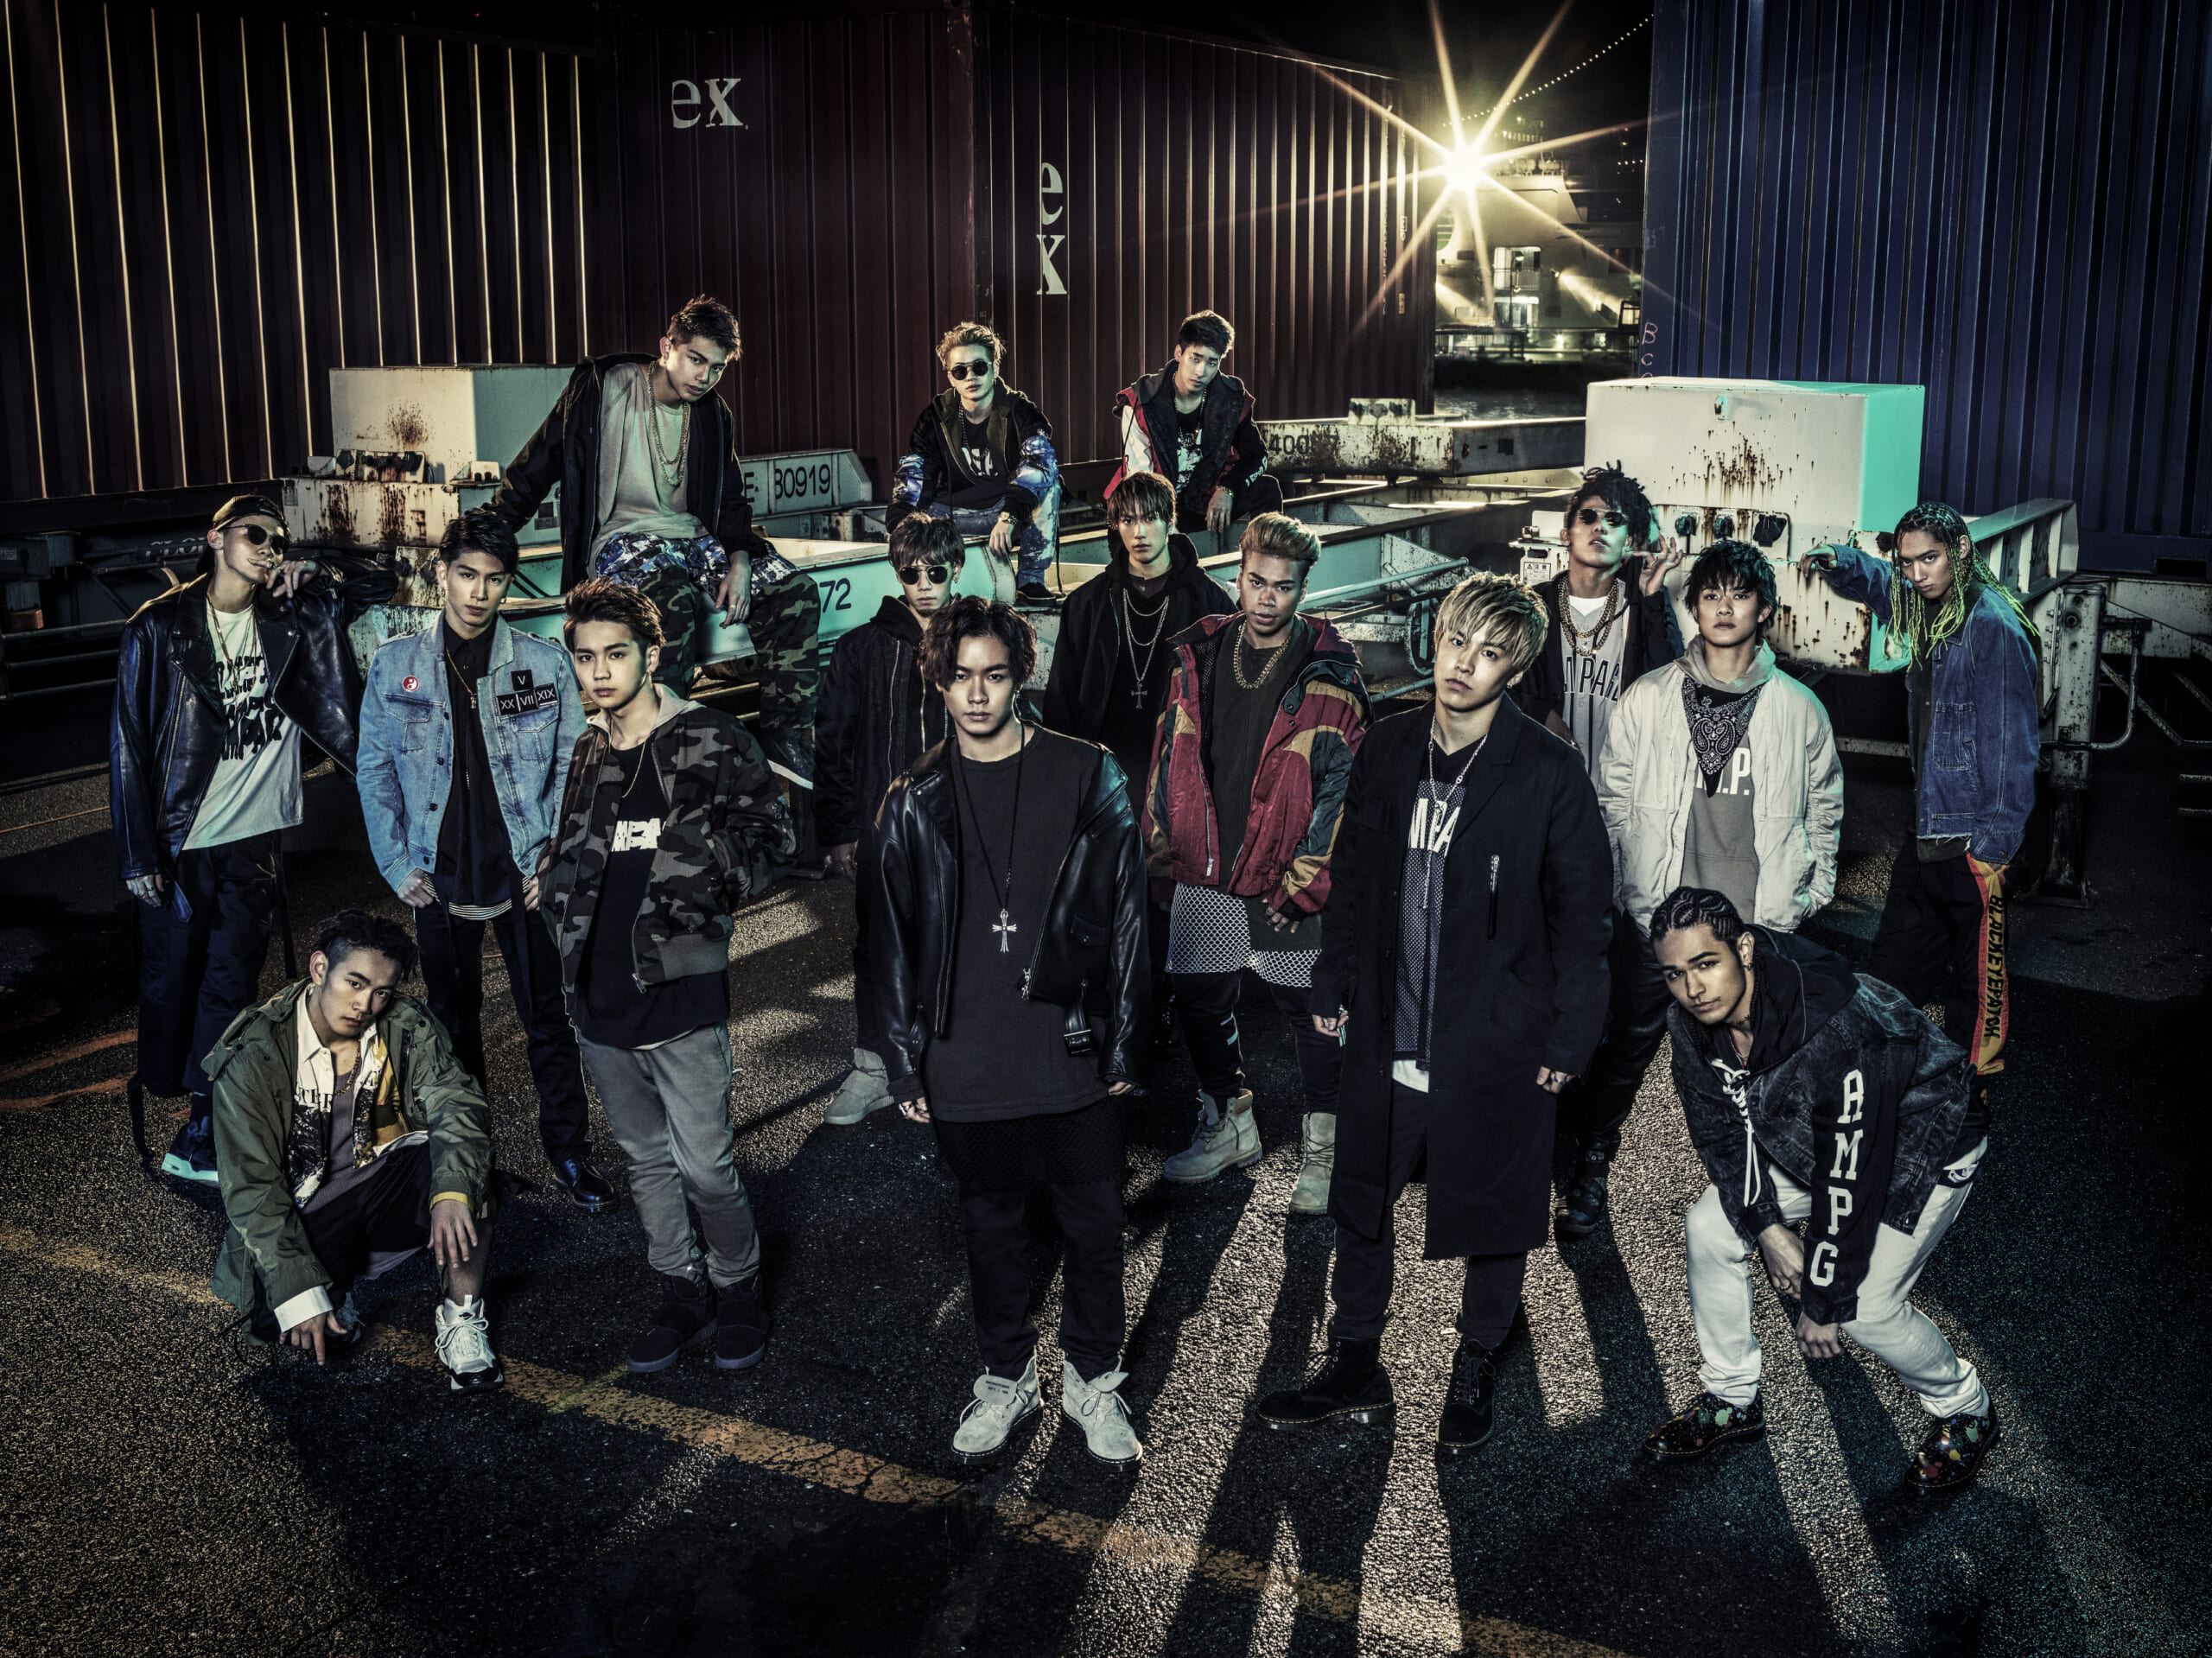 THE RAMPAGE from EXILE TRIBE<br />「FRONTIERS」~ロングインタビュー~<br />『新たな挑戦のはじまり』